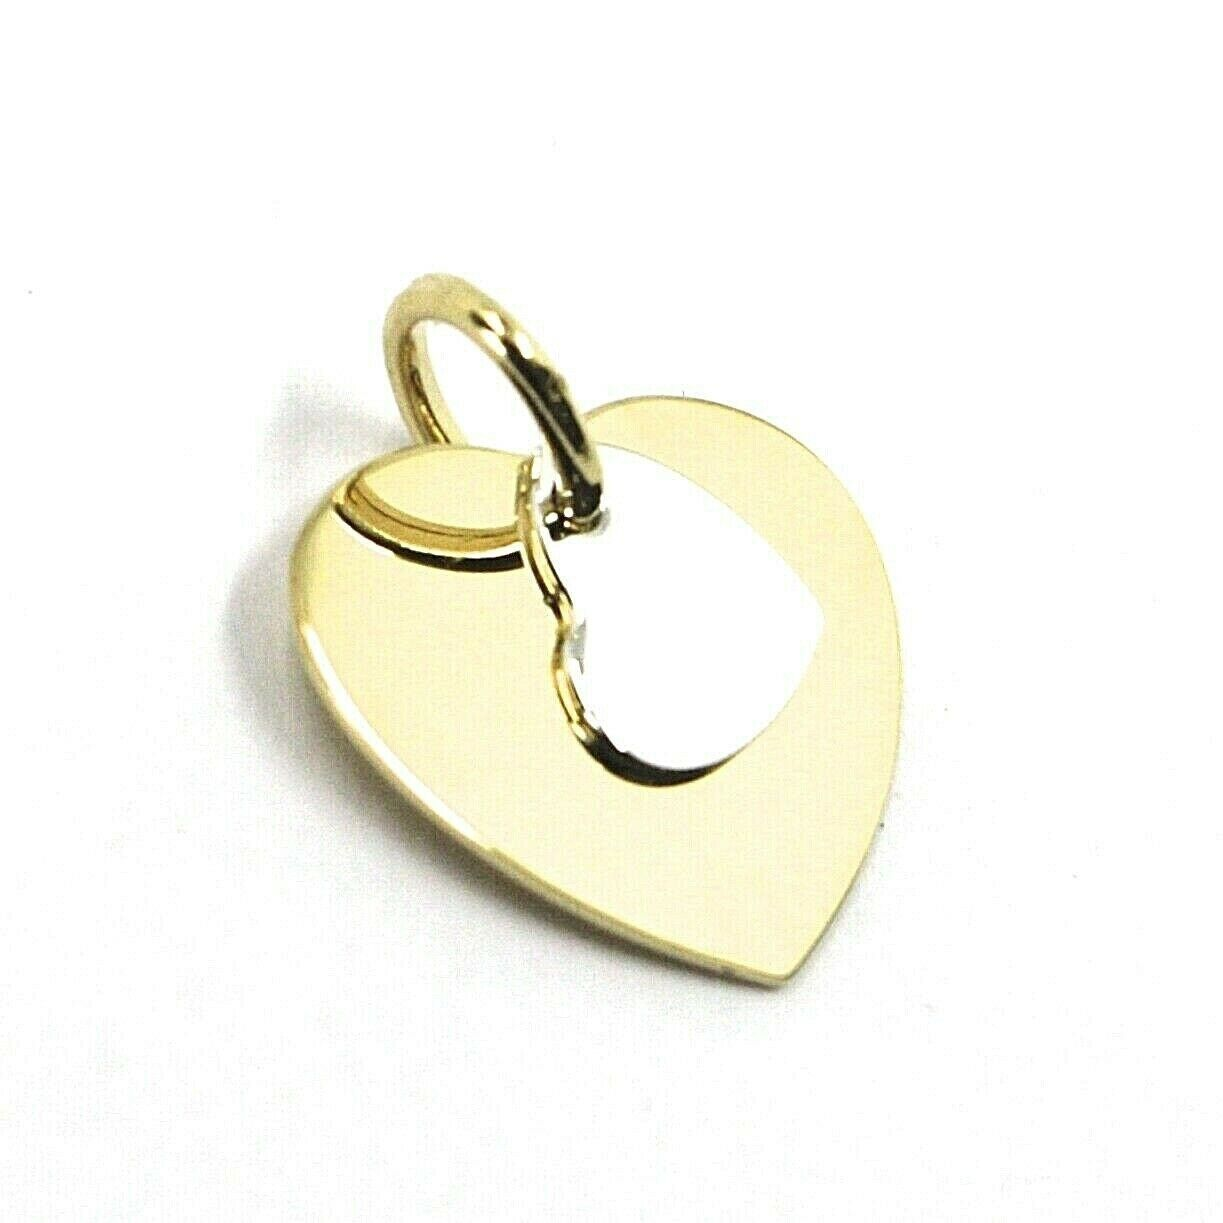 18K YELLOW WHITE GOLD PENDANT DOUBLE FLAT HEART, LENGTH 12mm, 0.47 inches